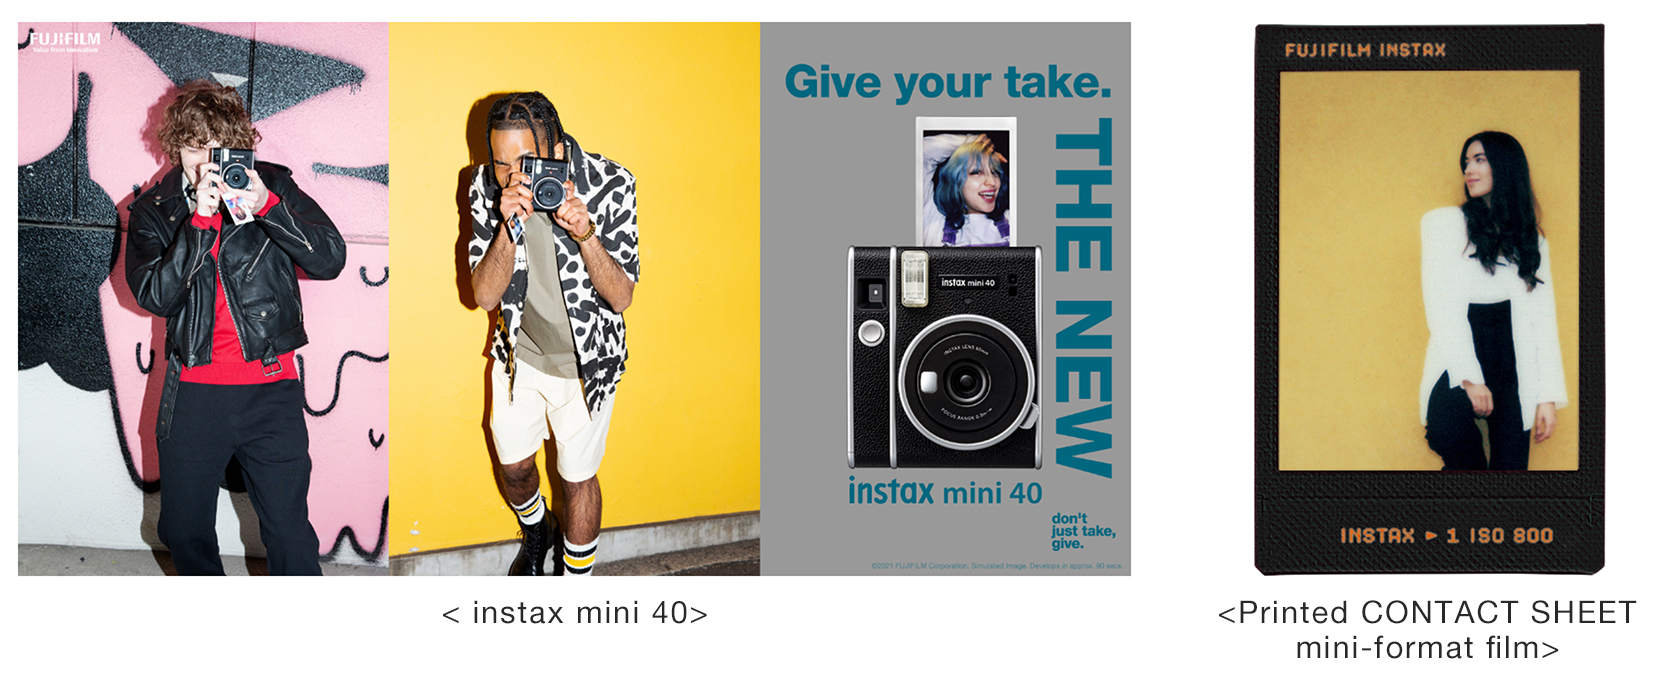 [Image]instax mini 40 / Printed CONTACT SHEET mini-format film